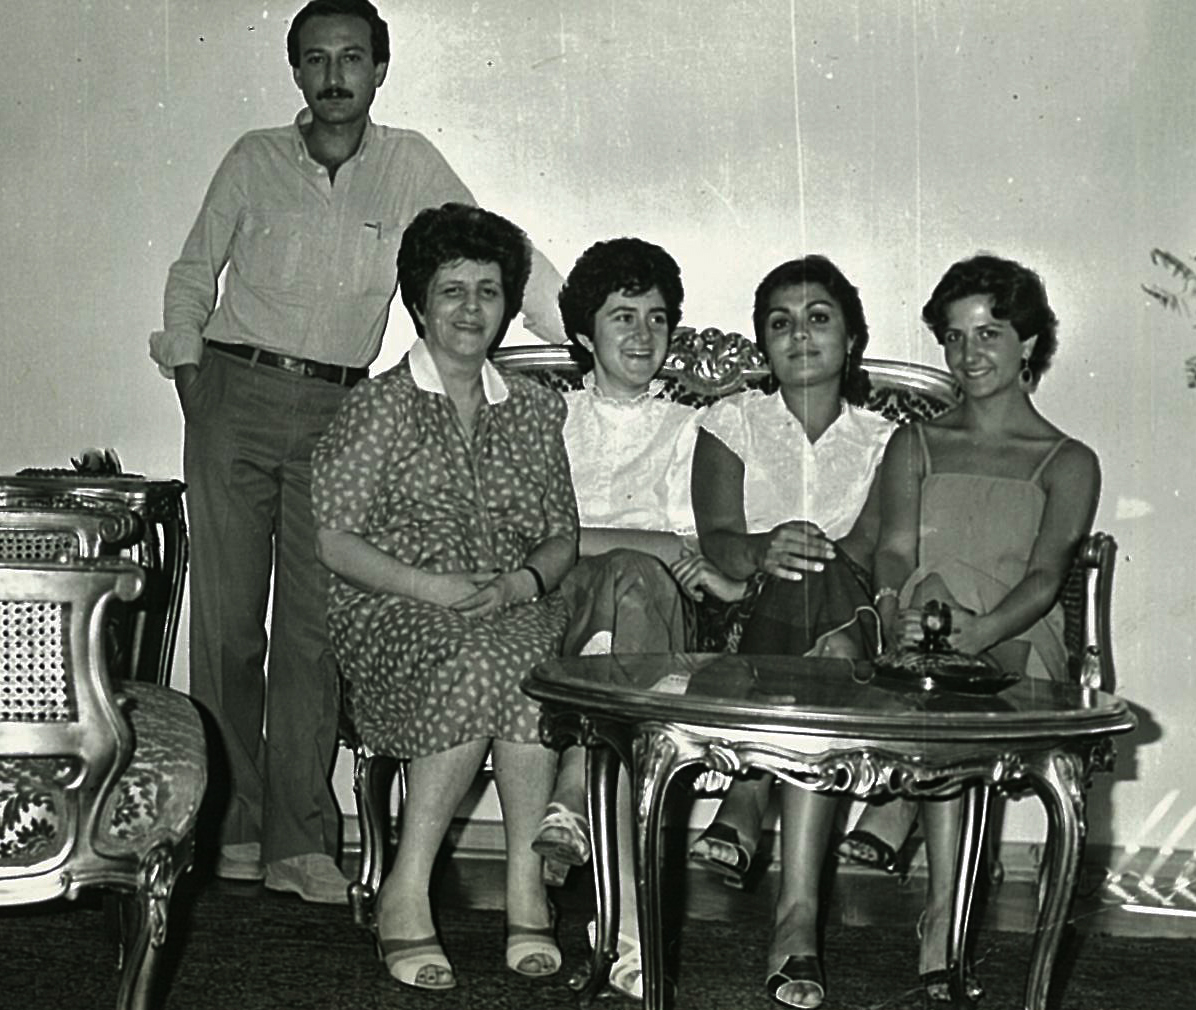 Halil Tarzi with Fatma-Humeyra-Simin-Muazzez